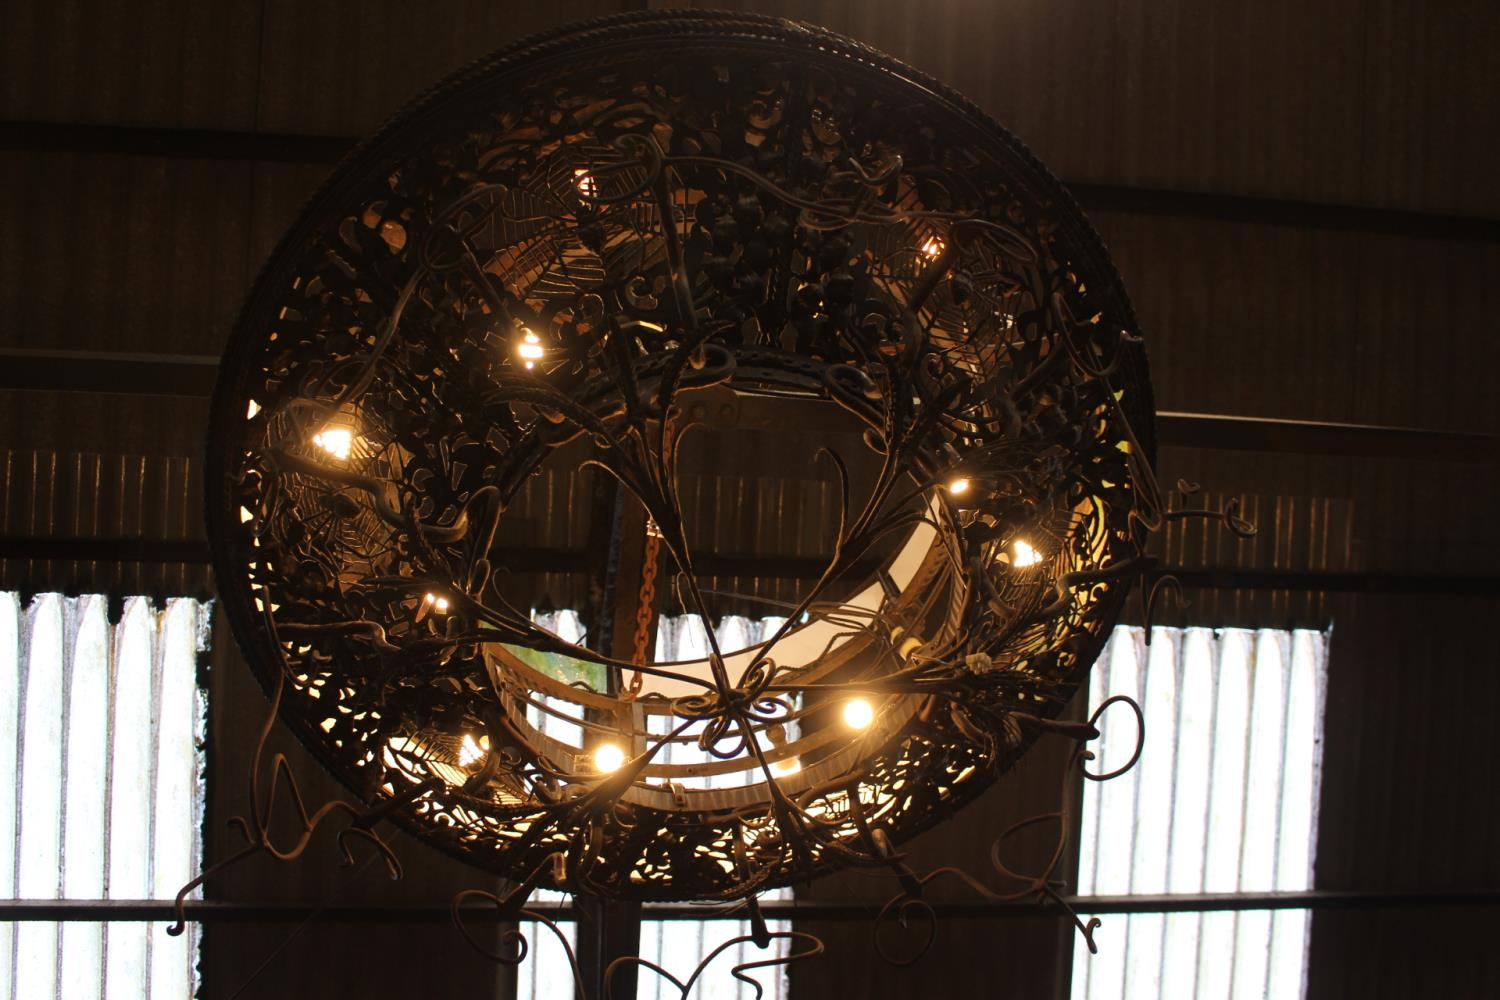 Wrought iron two tier ceiling light - Image 3 of 3